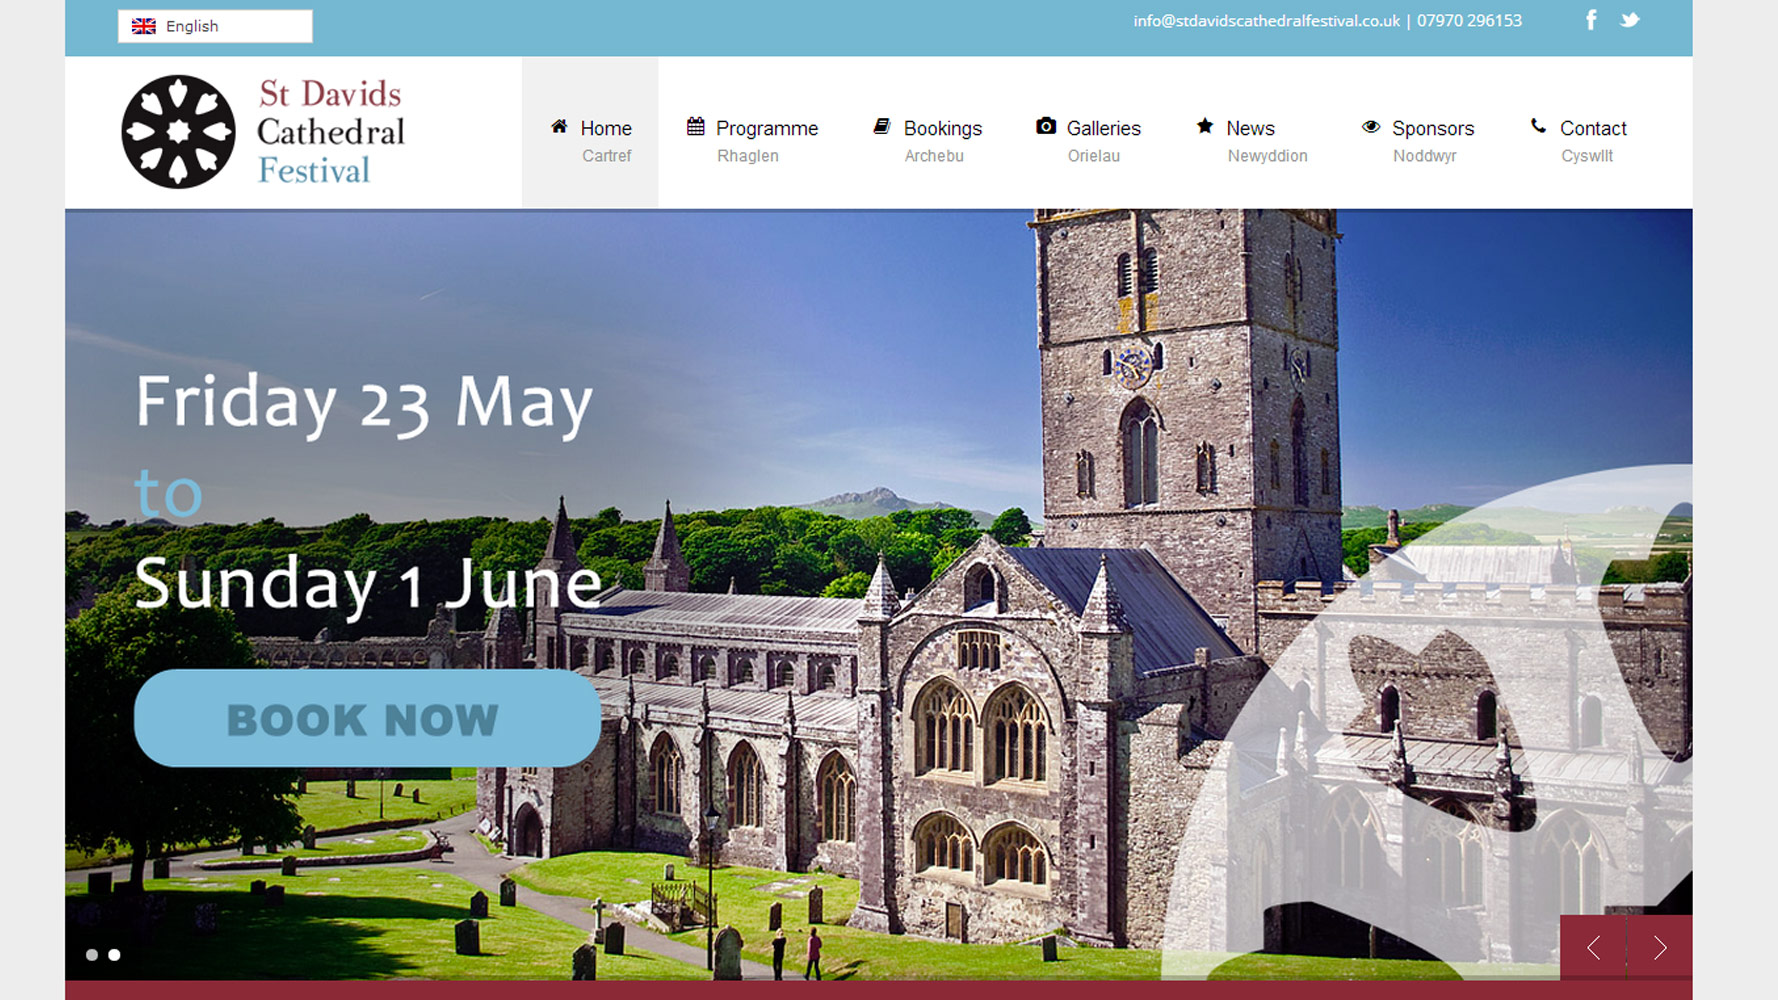 St. Davids Cathedral Festival Web Design by Web Adept